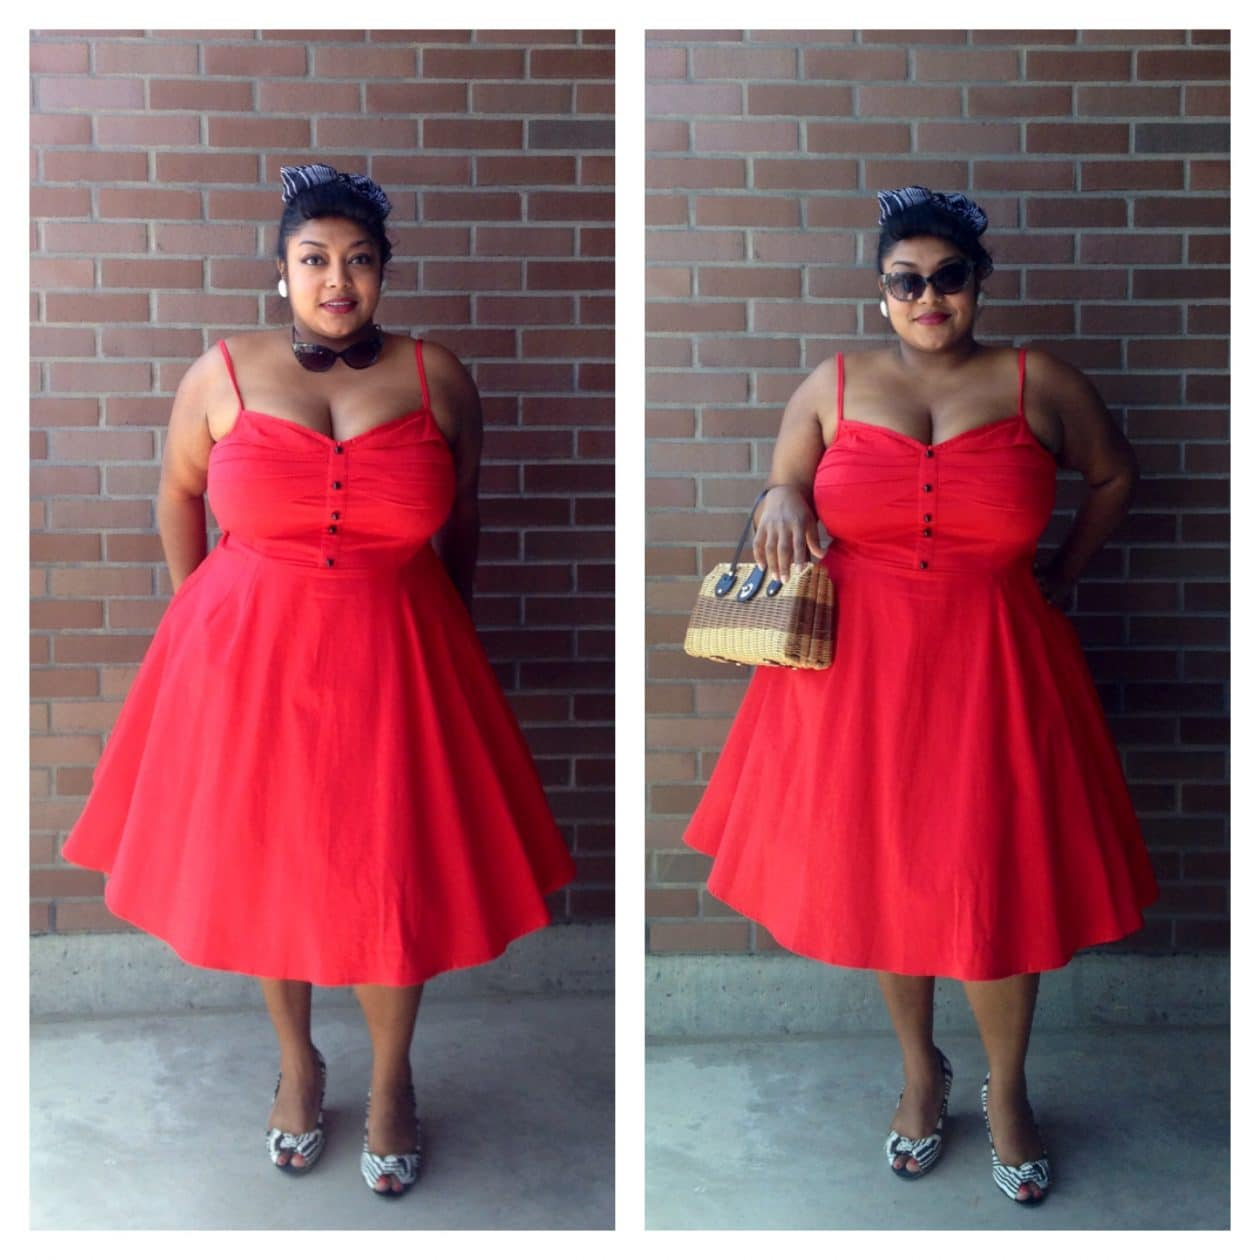 Plus Size Fashion Blogger: Irene Kavita